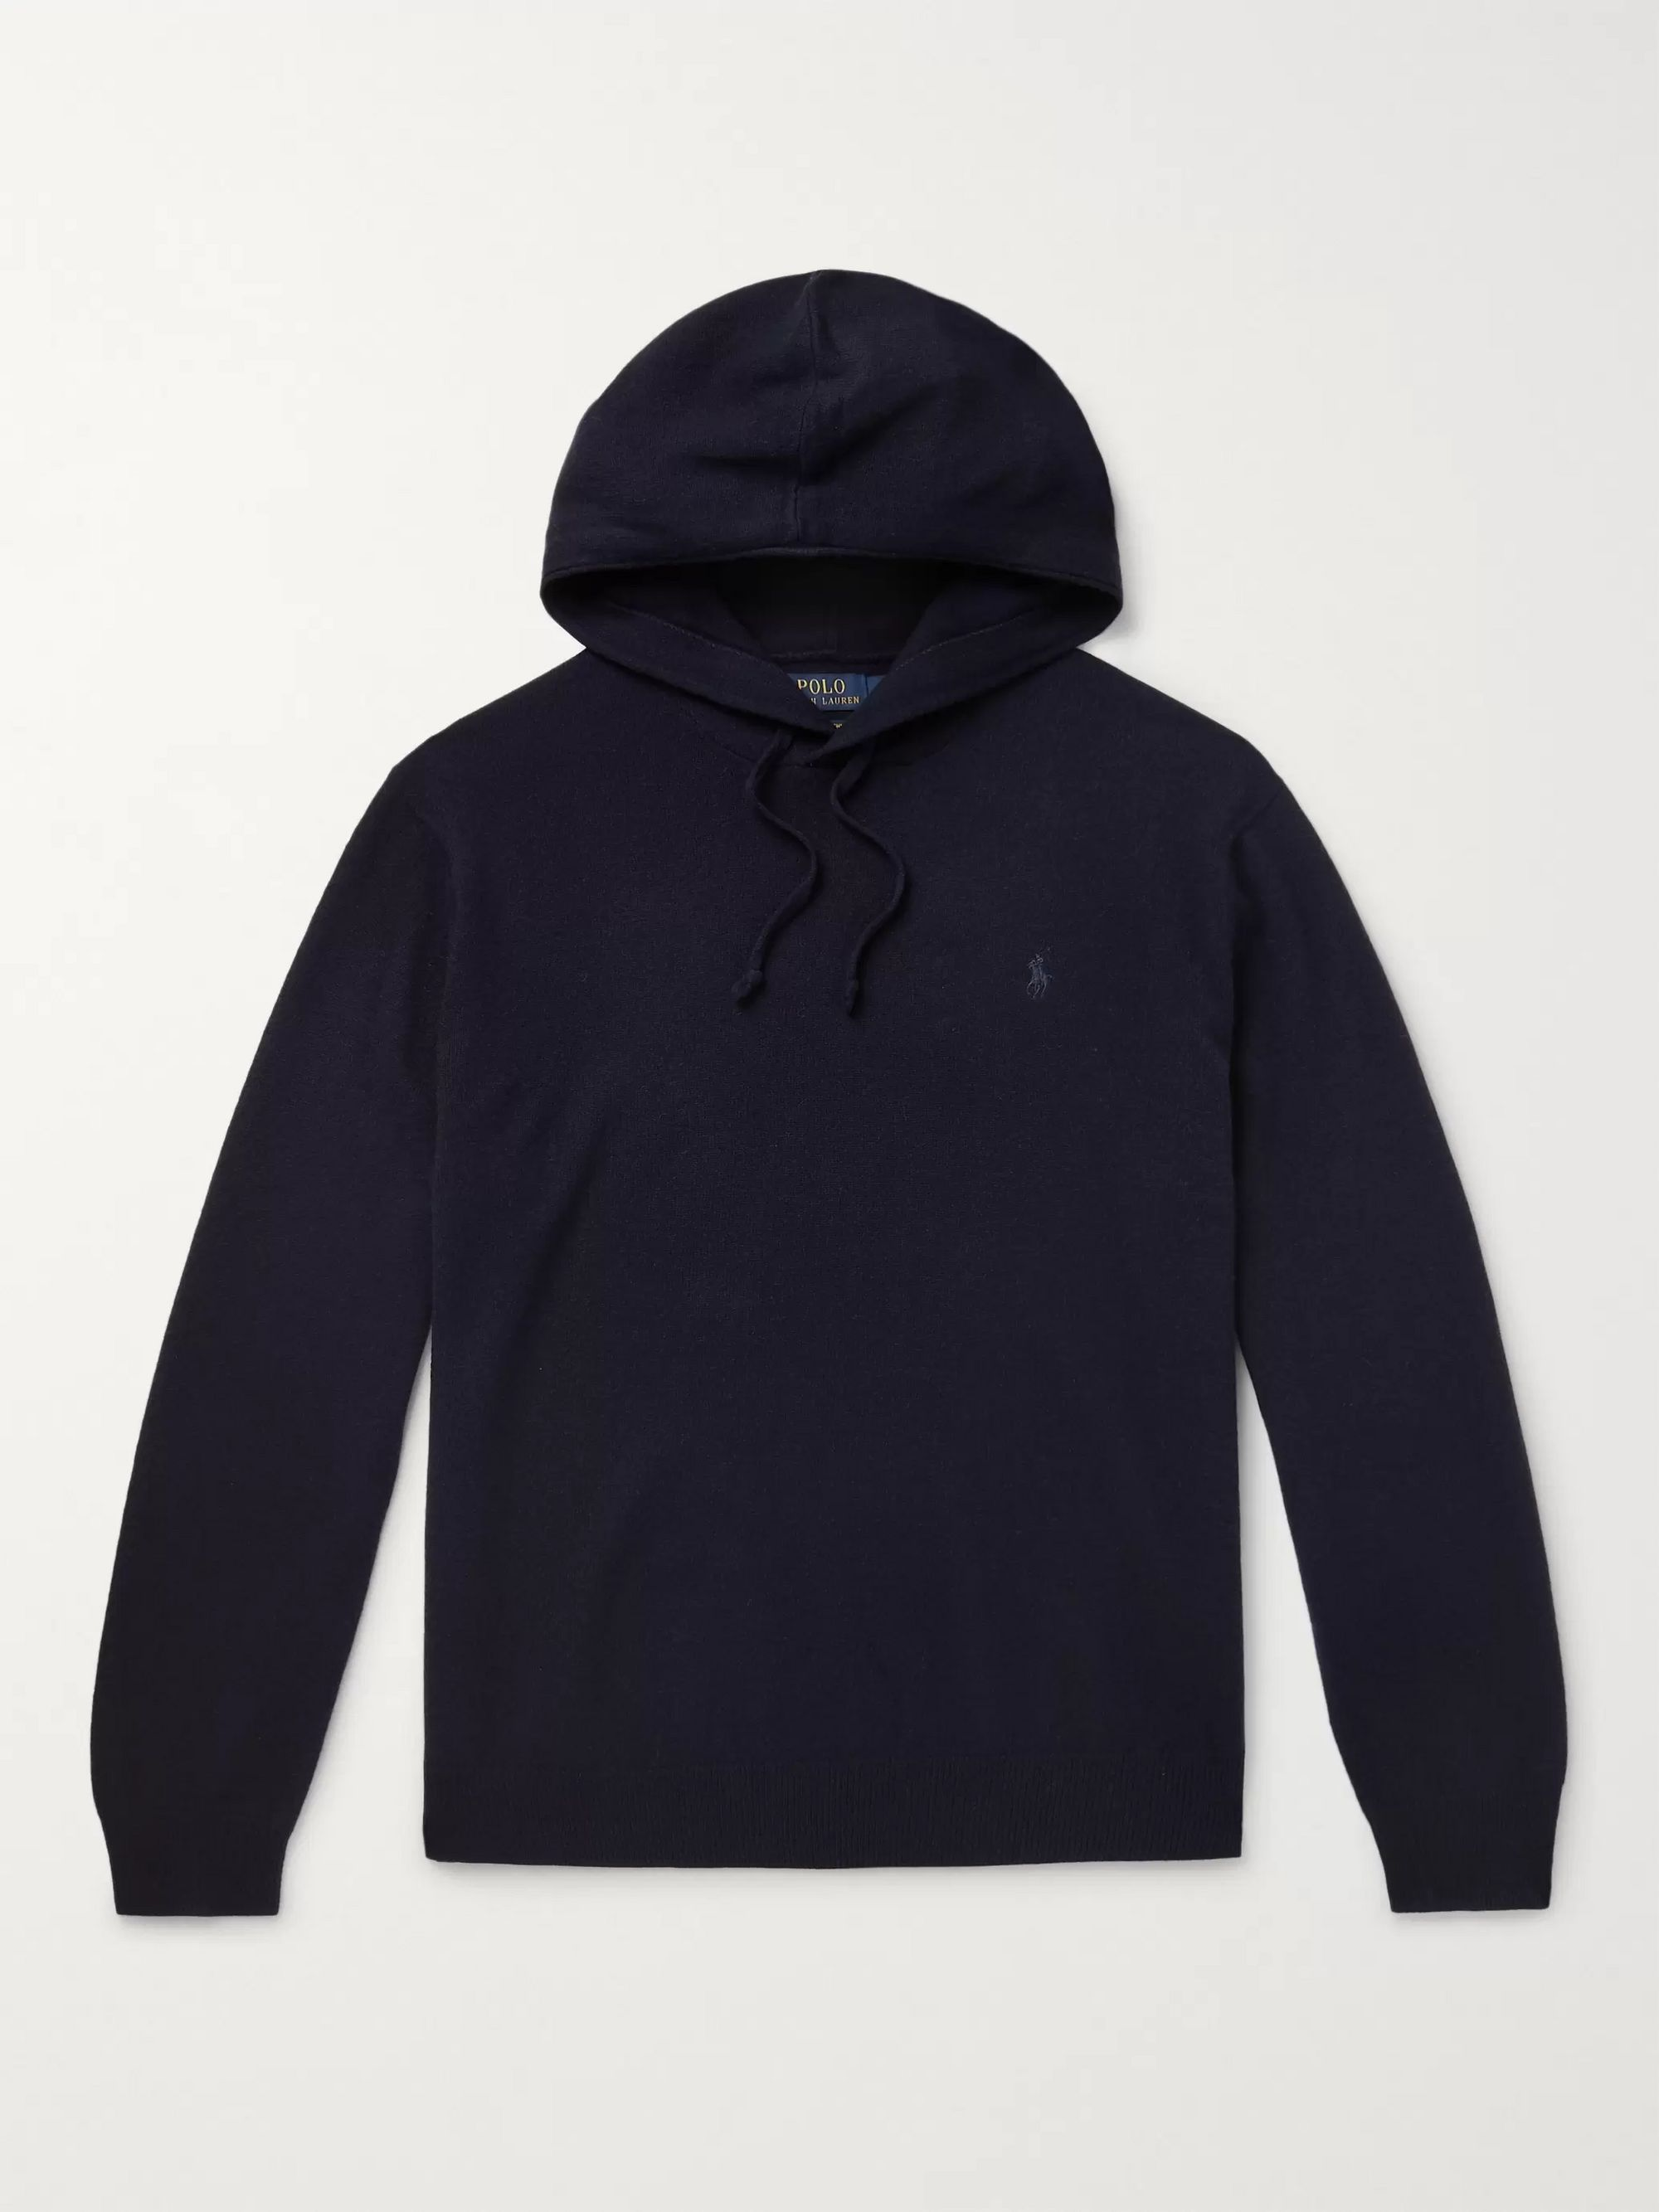 Cashmere Hoodie by Polo Ralph Lauren